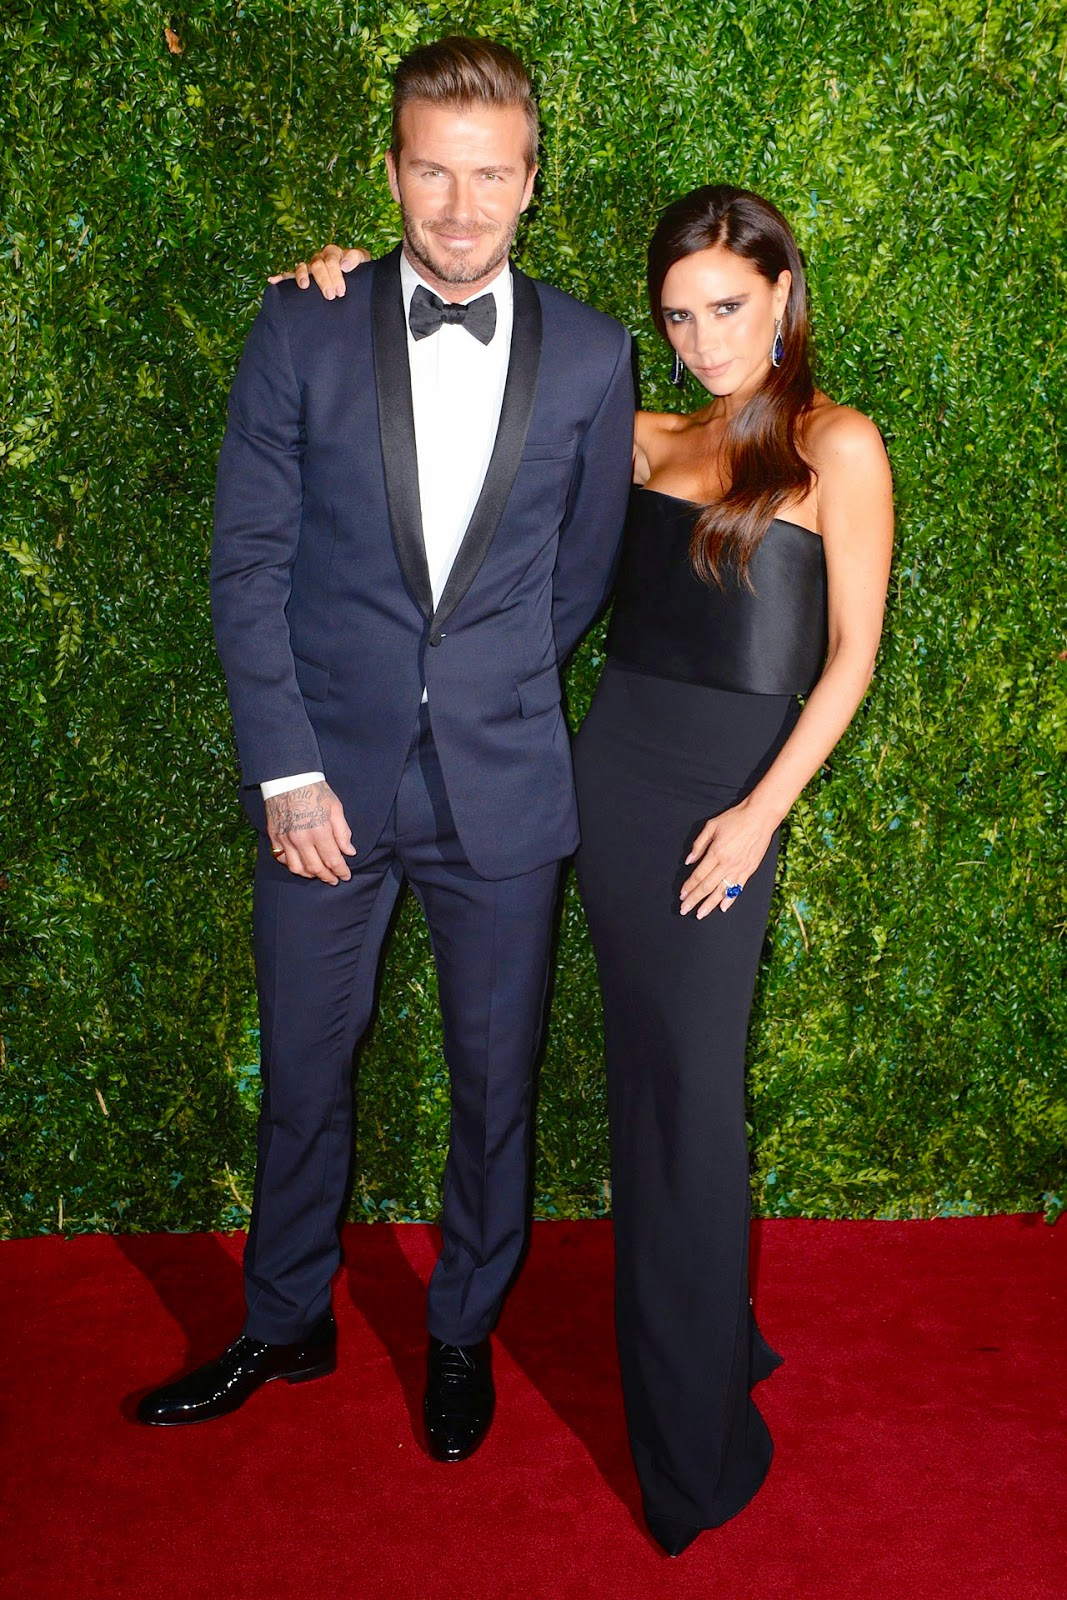 David Beckham wears Dior Homme tuxedo to 60th Evening Standard Awards Theatre Awards 30th November 2014 London